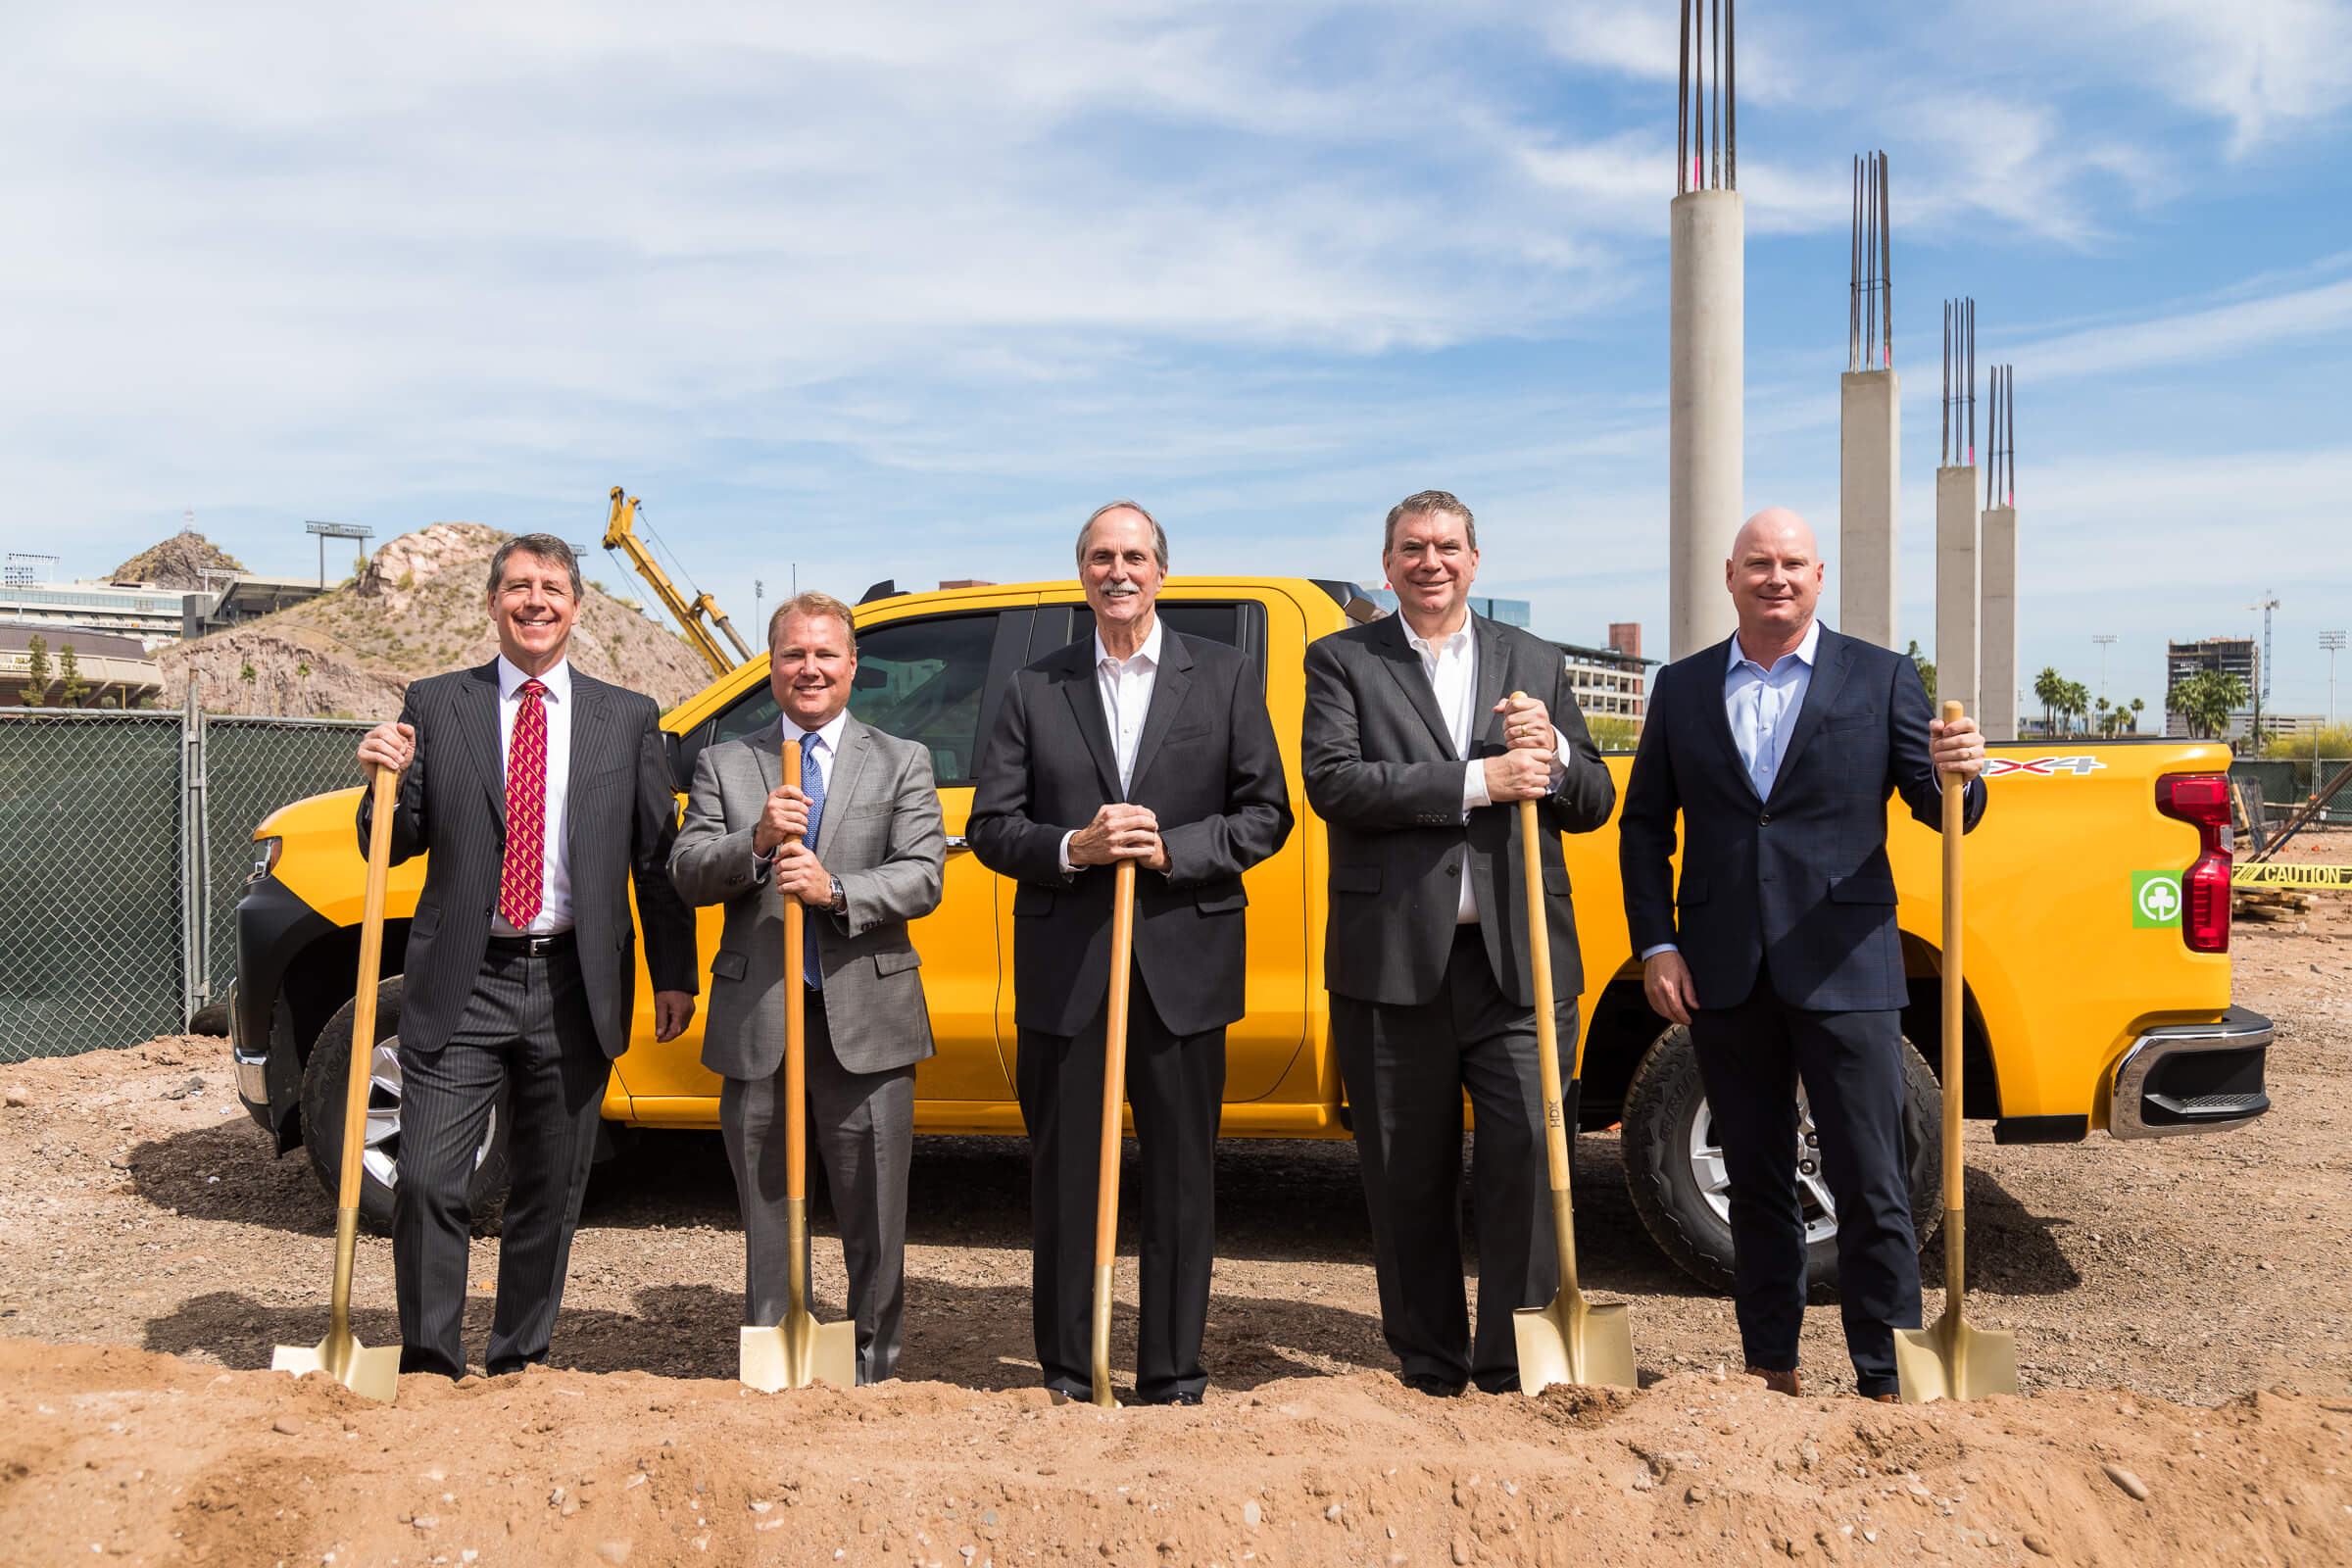 Tempe Commercial Real Estate News